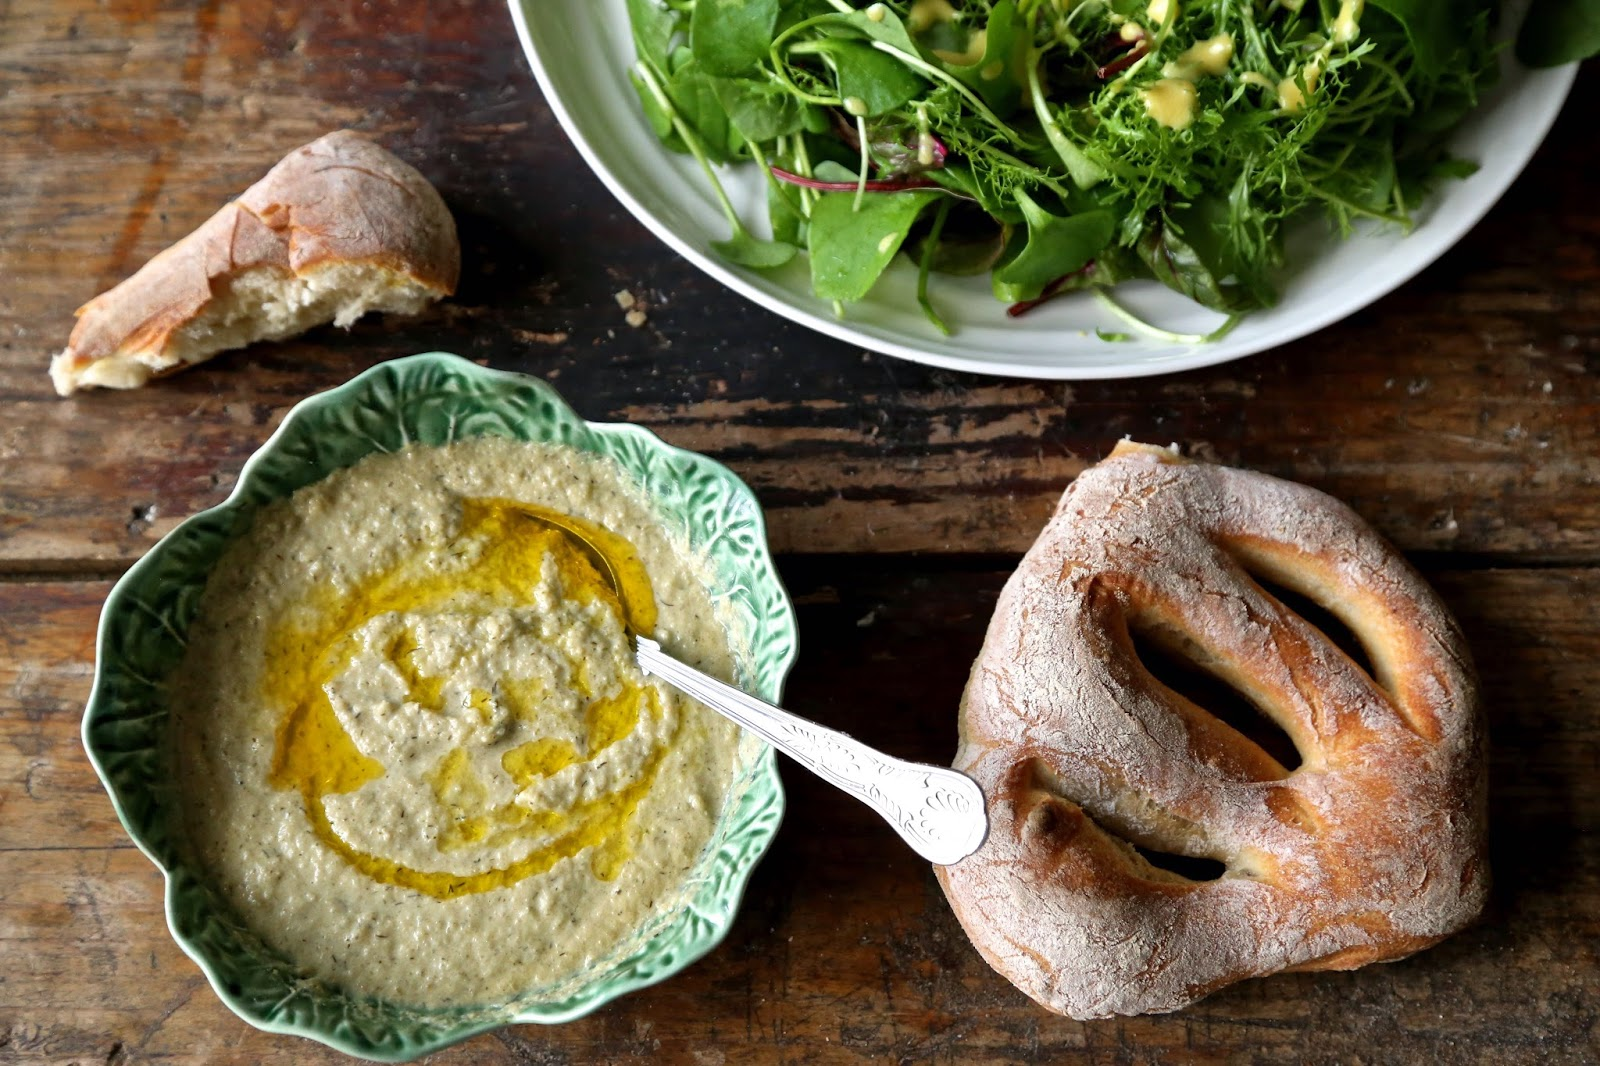 roast fennel soup, salad, fougasse bread